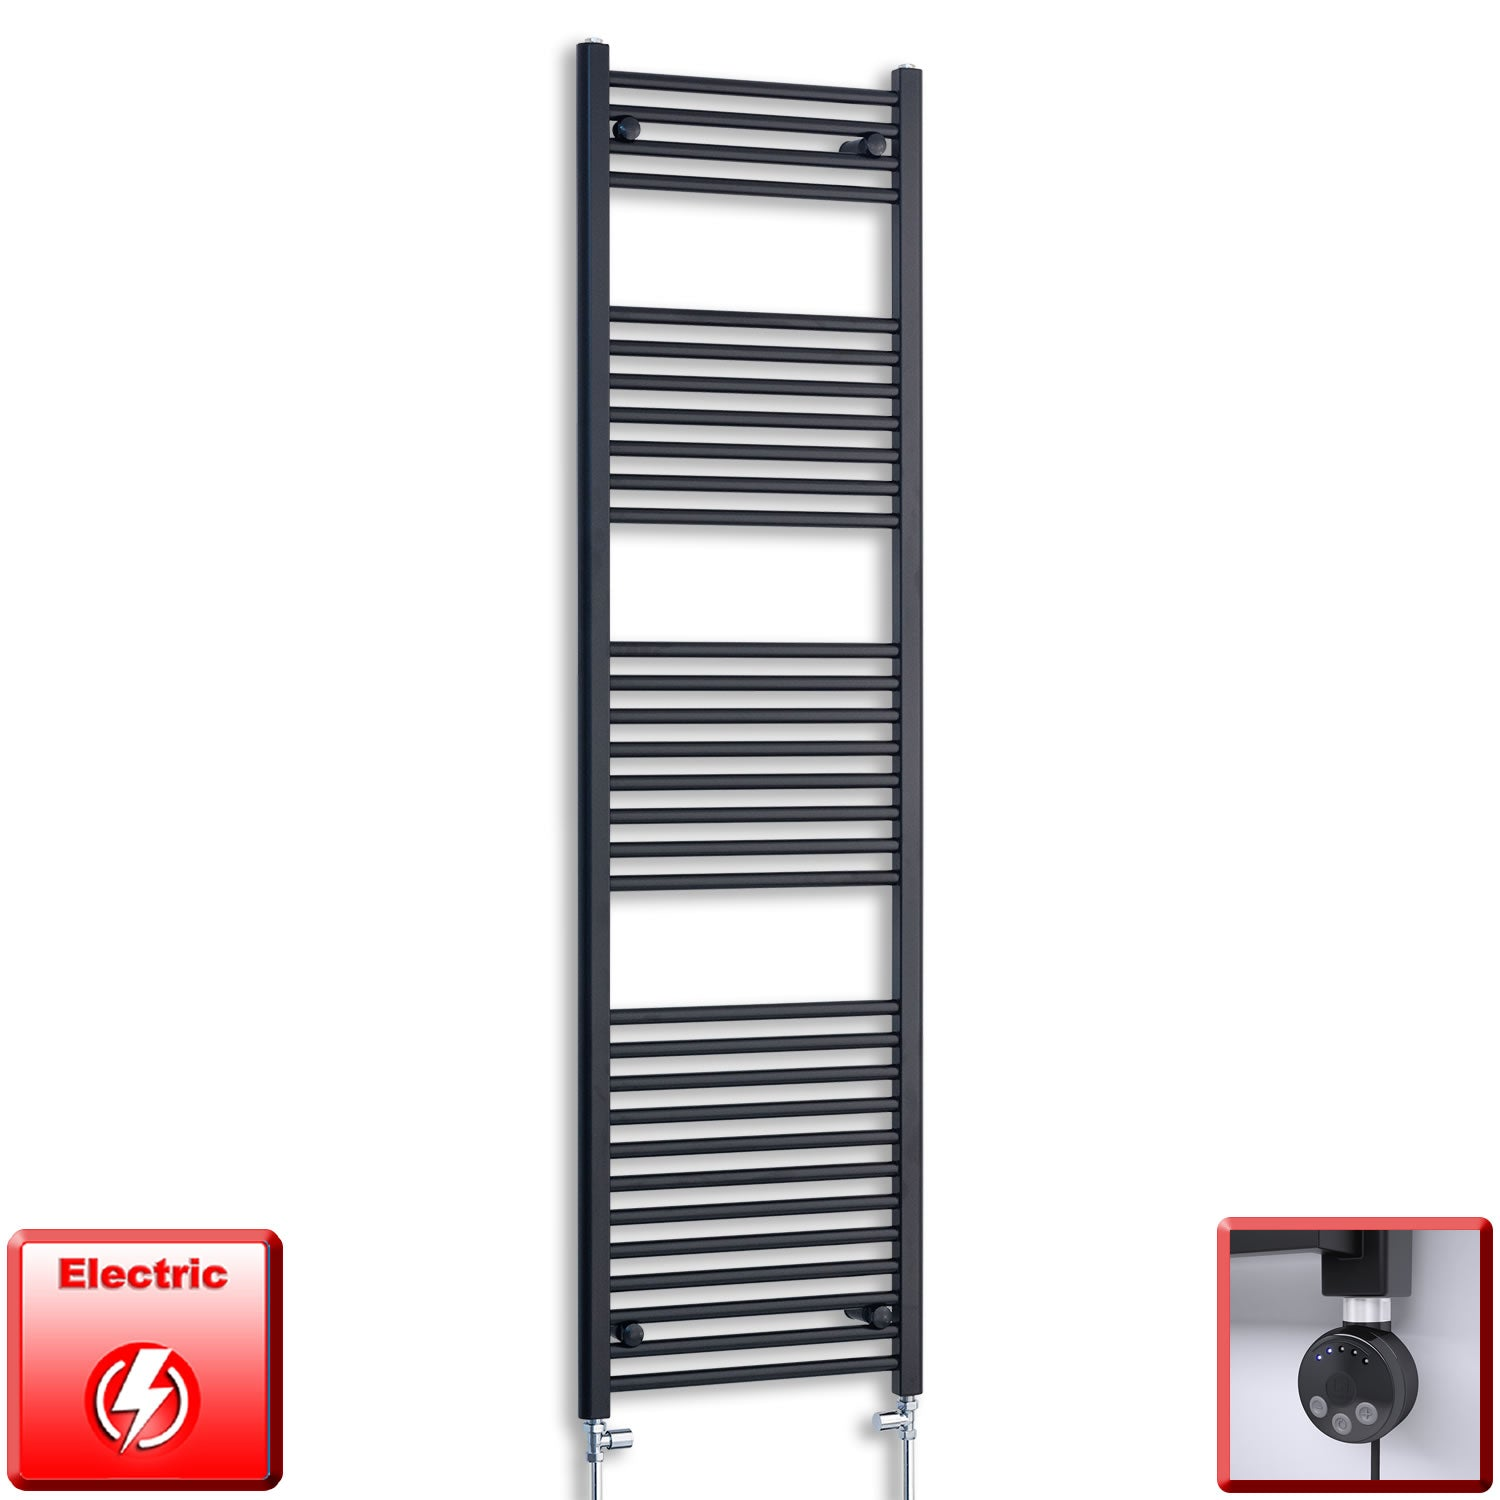 500mm Wide 1800mm High Pre-Filled Black Electric Towel Rail Radiator With Thermostatic MEG Element